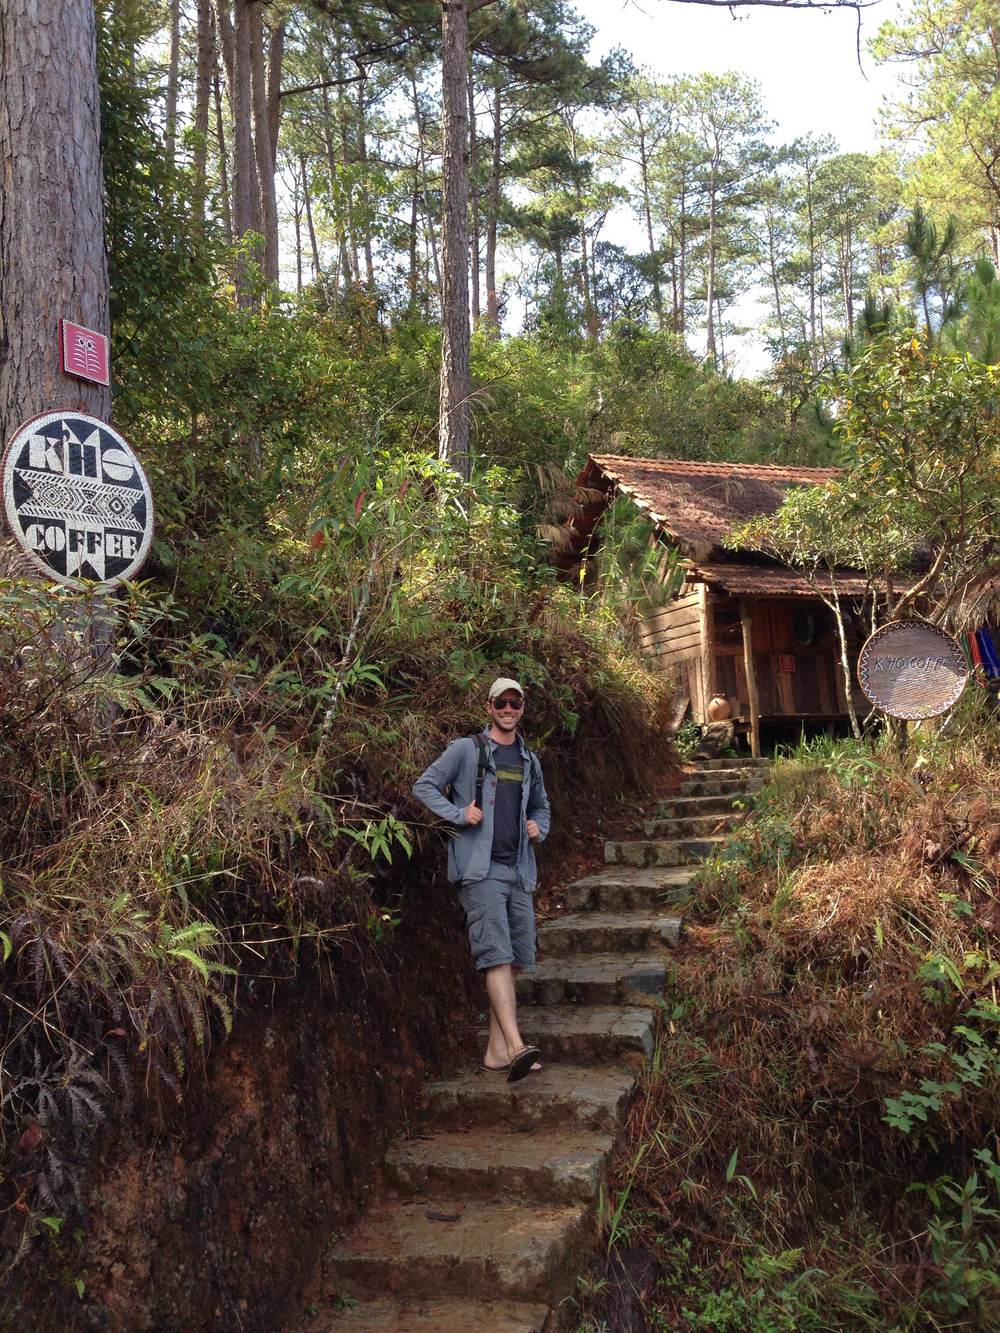 Josh Guikema, of K'Ho Coffee, at the entrance to the K'Ho Cafe, about 20km from Dalat